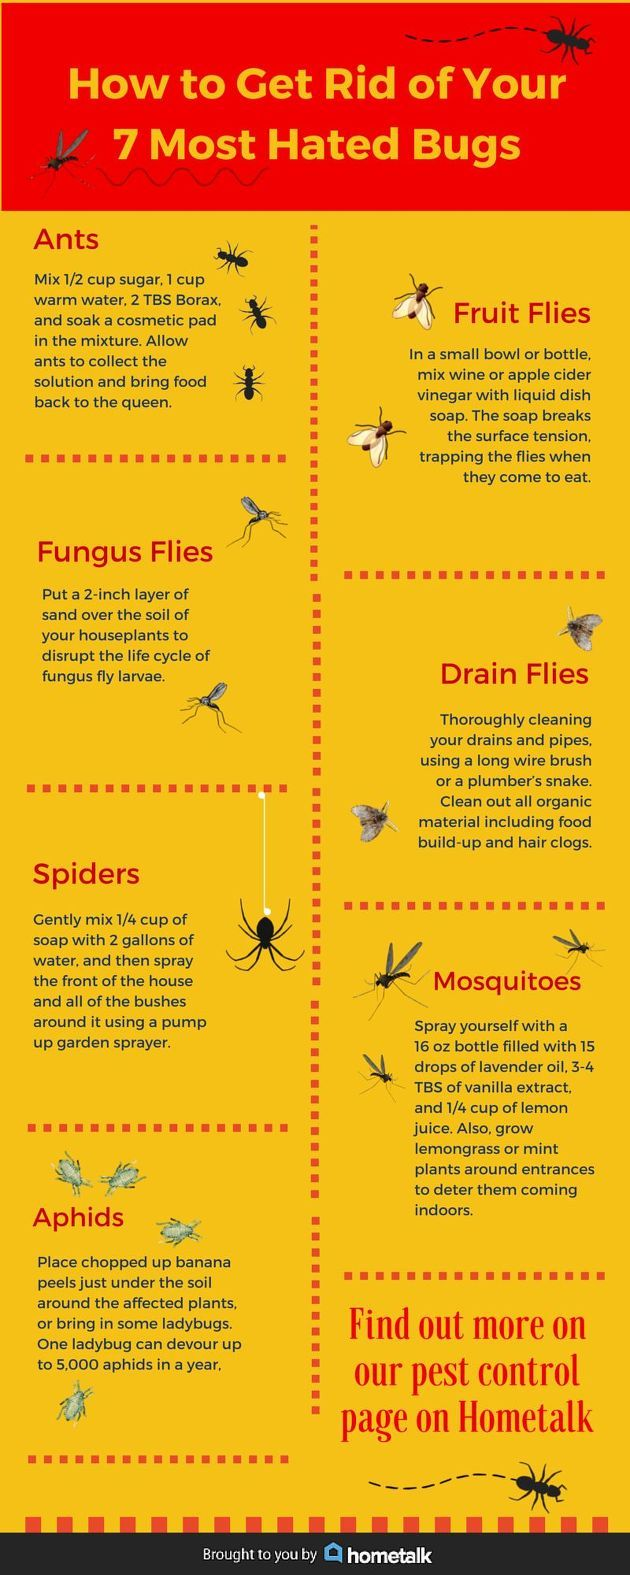 5 All-Natural Ways to Banish Bugs Outdoors